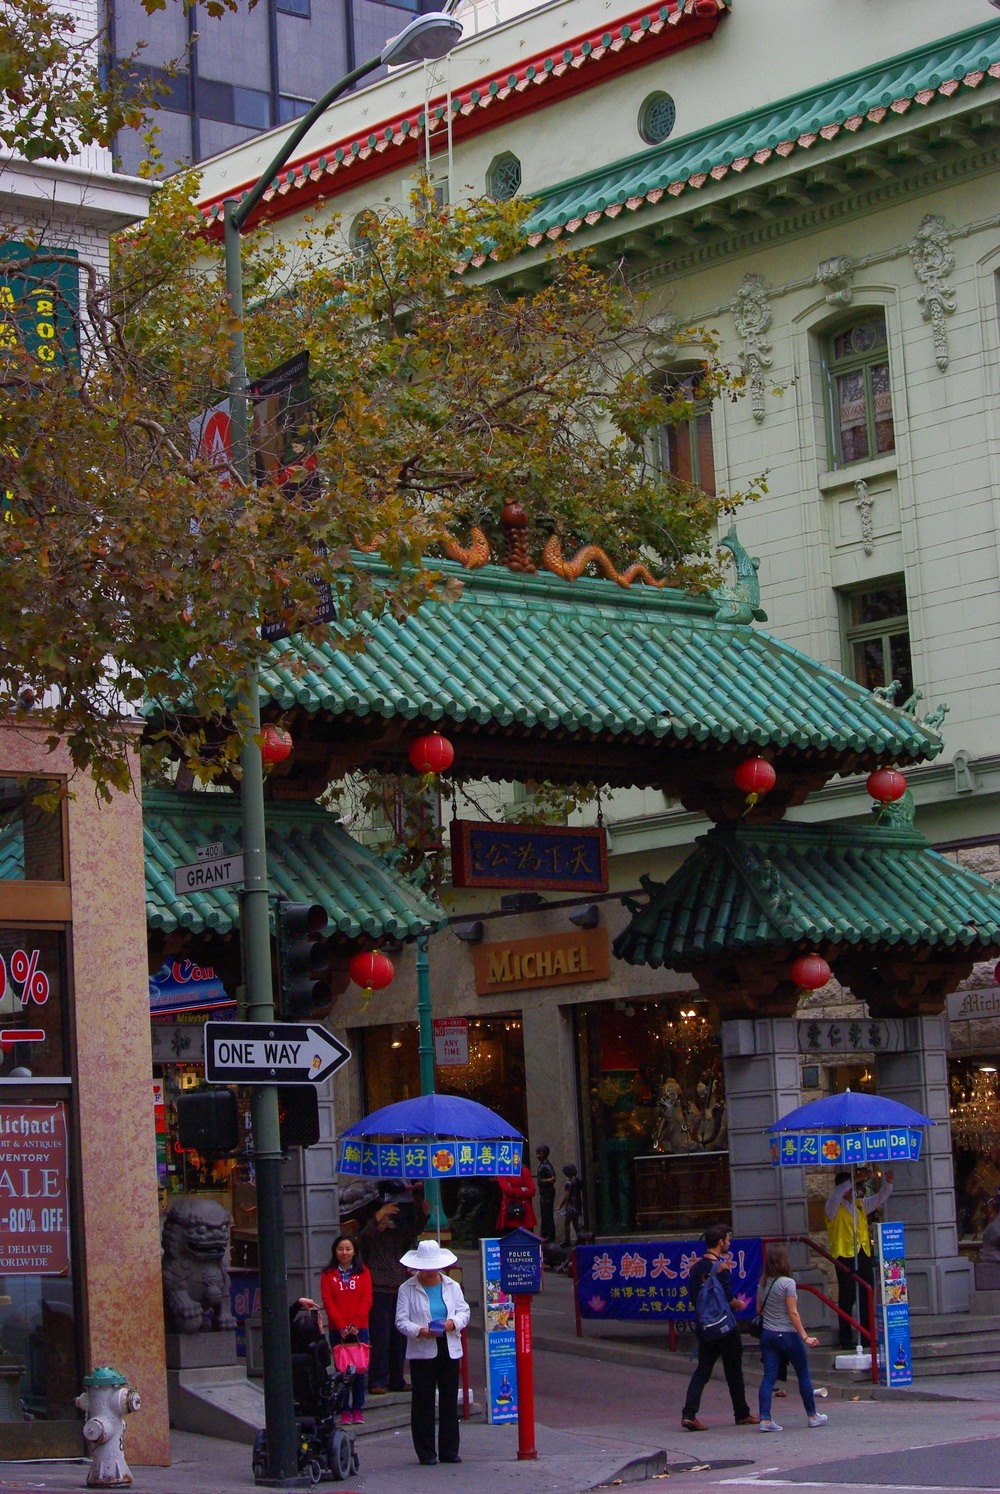 5.	Dine in the oldest Chinatown